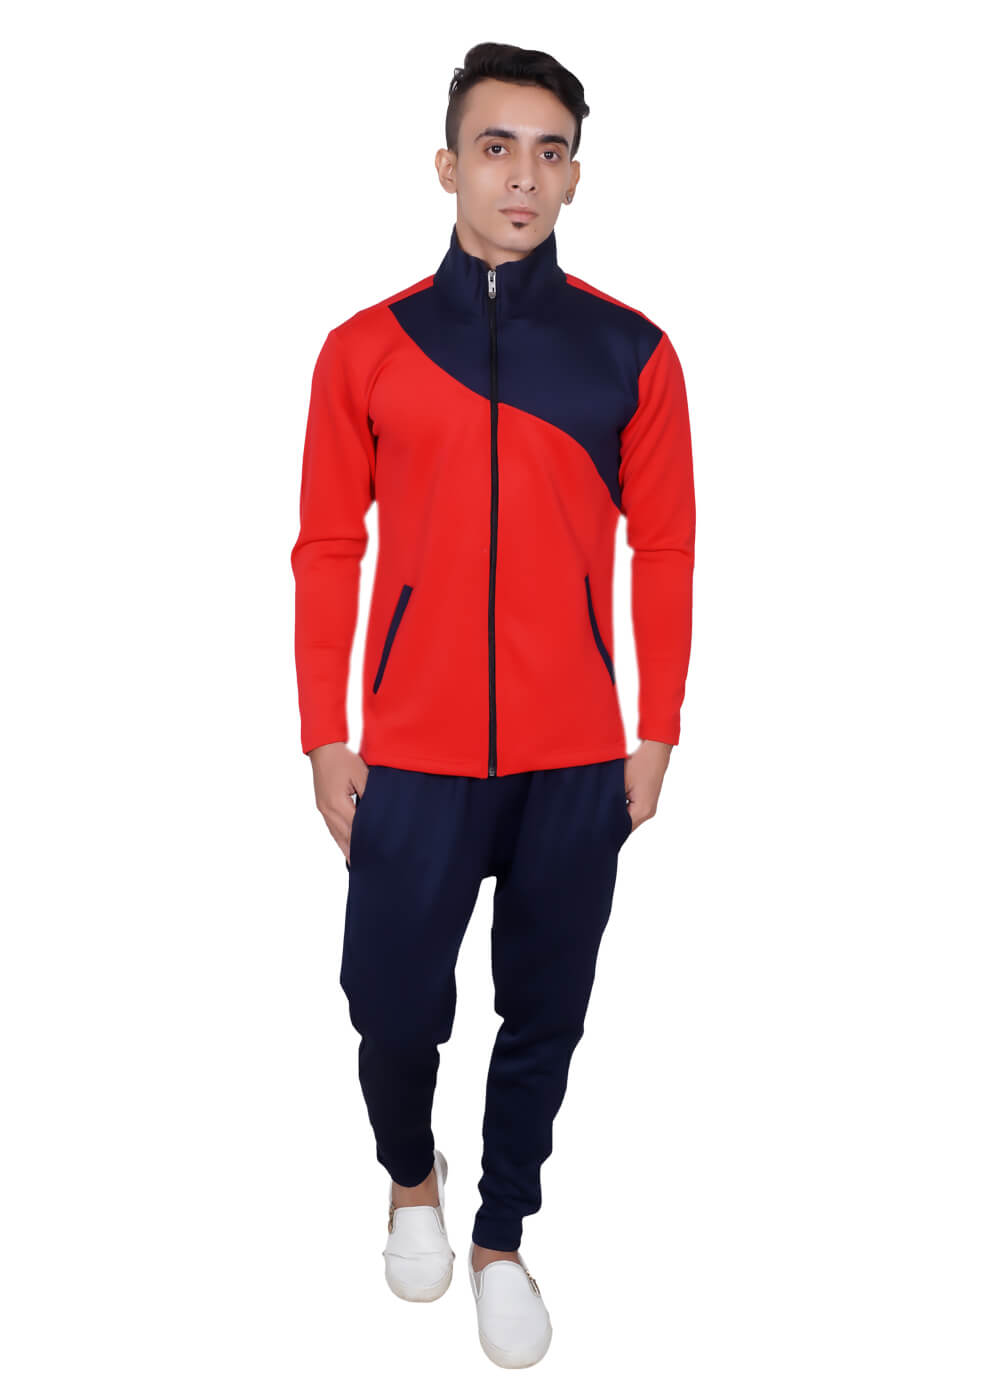 Cheap Tracksuits Manufacturers in Asansol